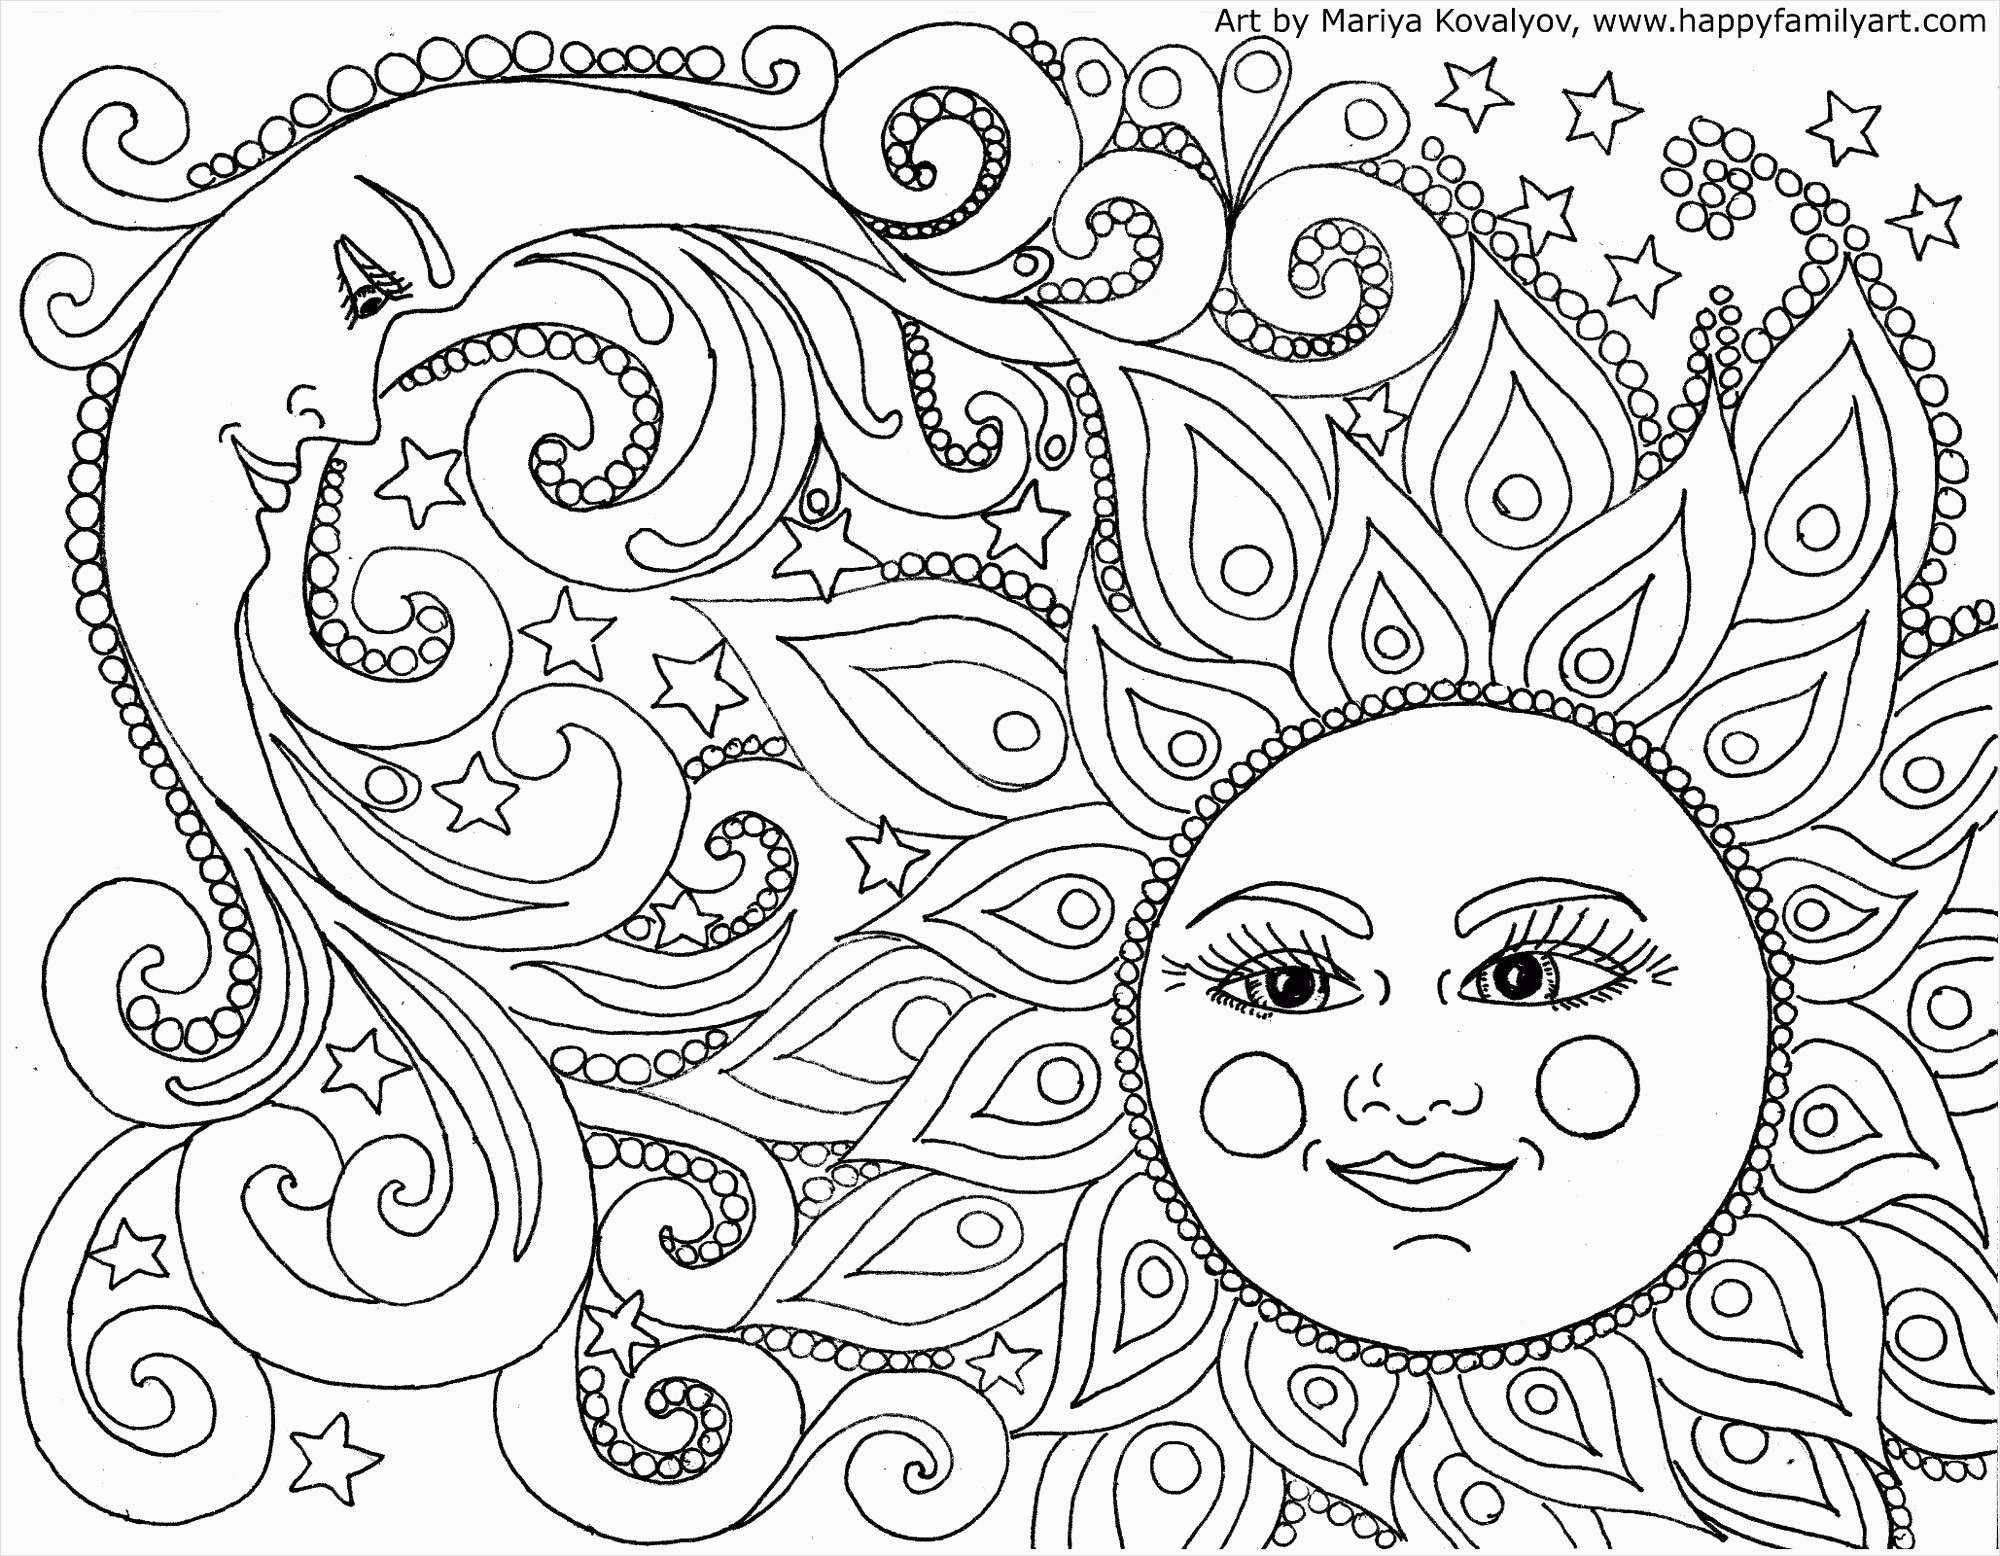 - Basic Drawing Book Free Download In 2020 (With Images) Moon